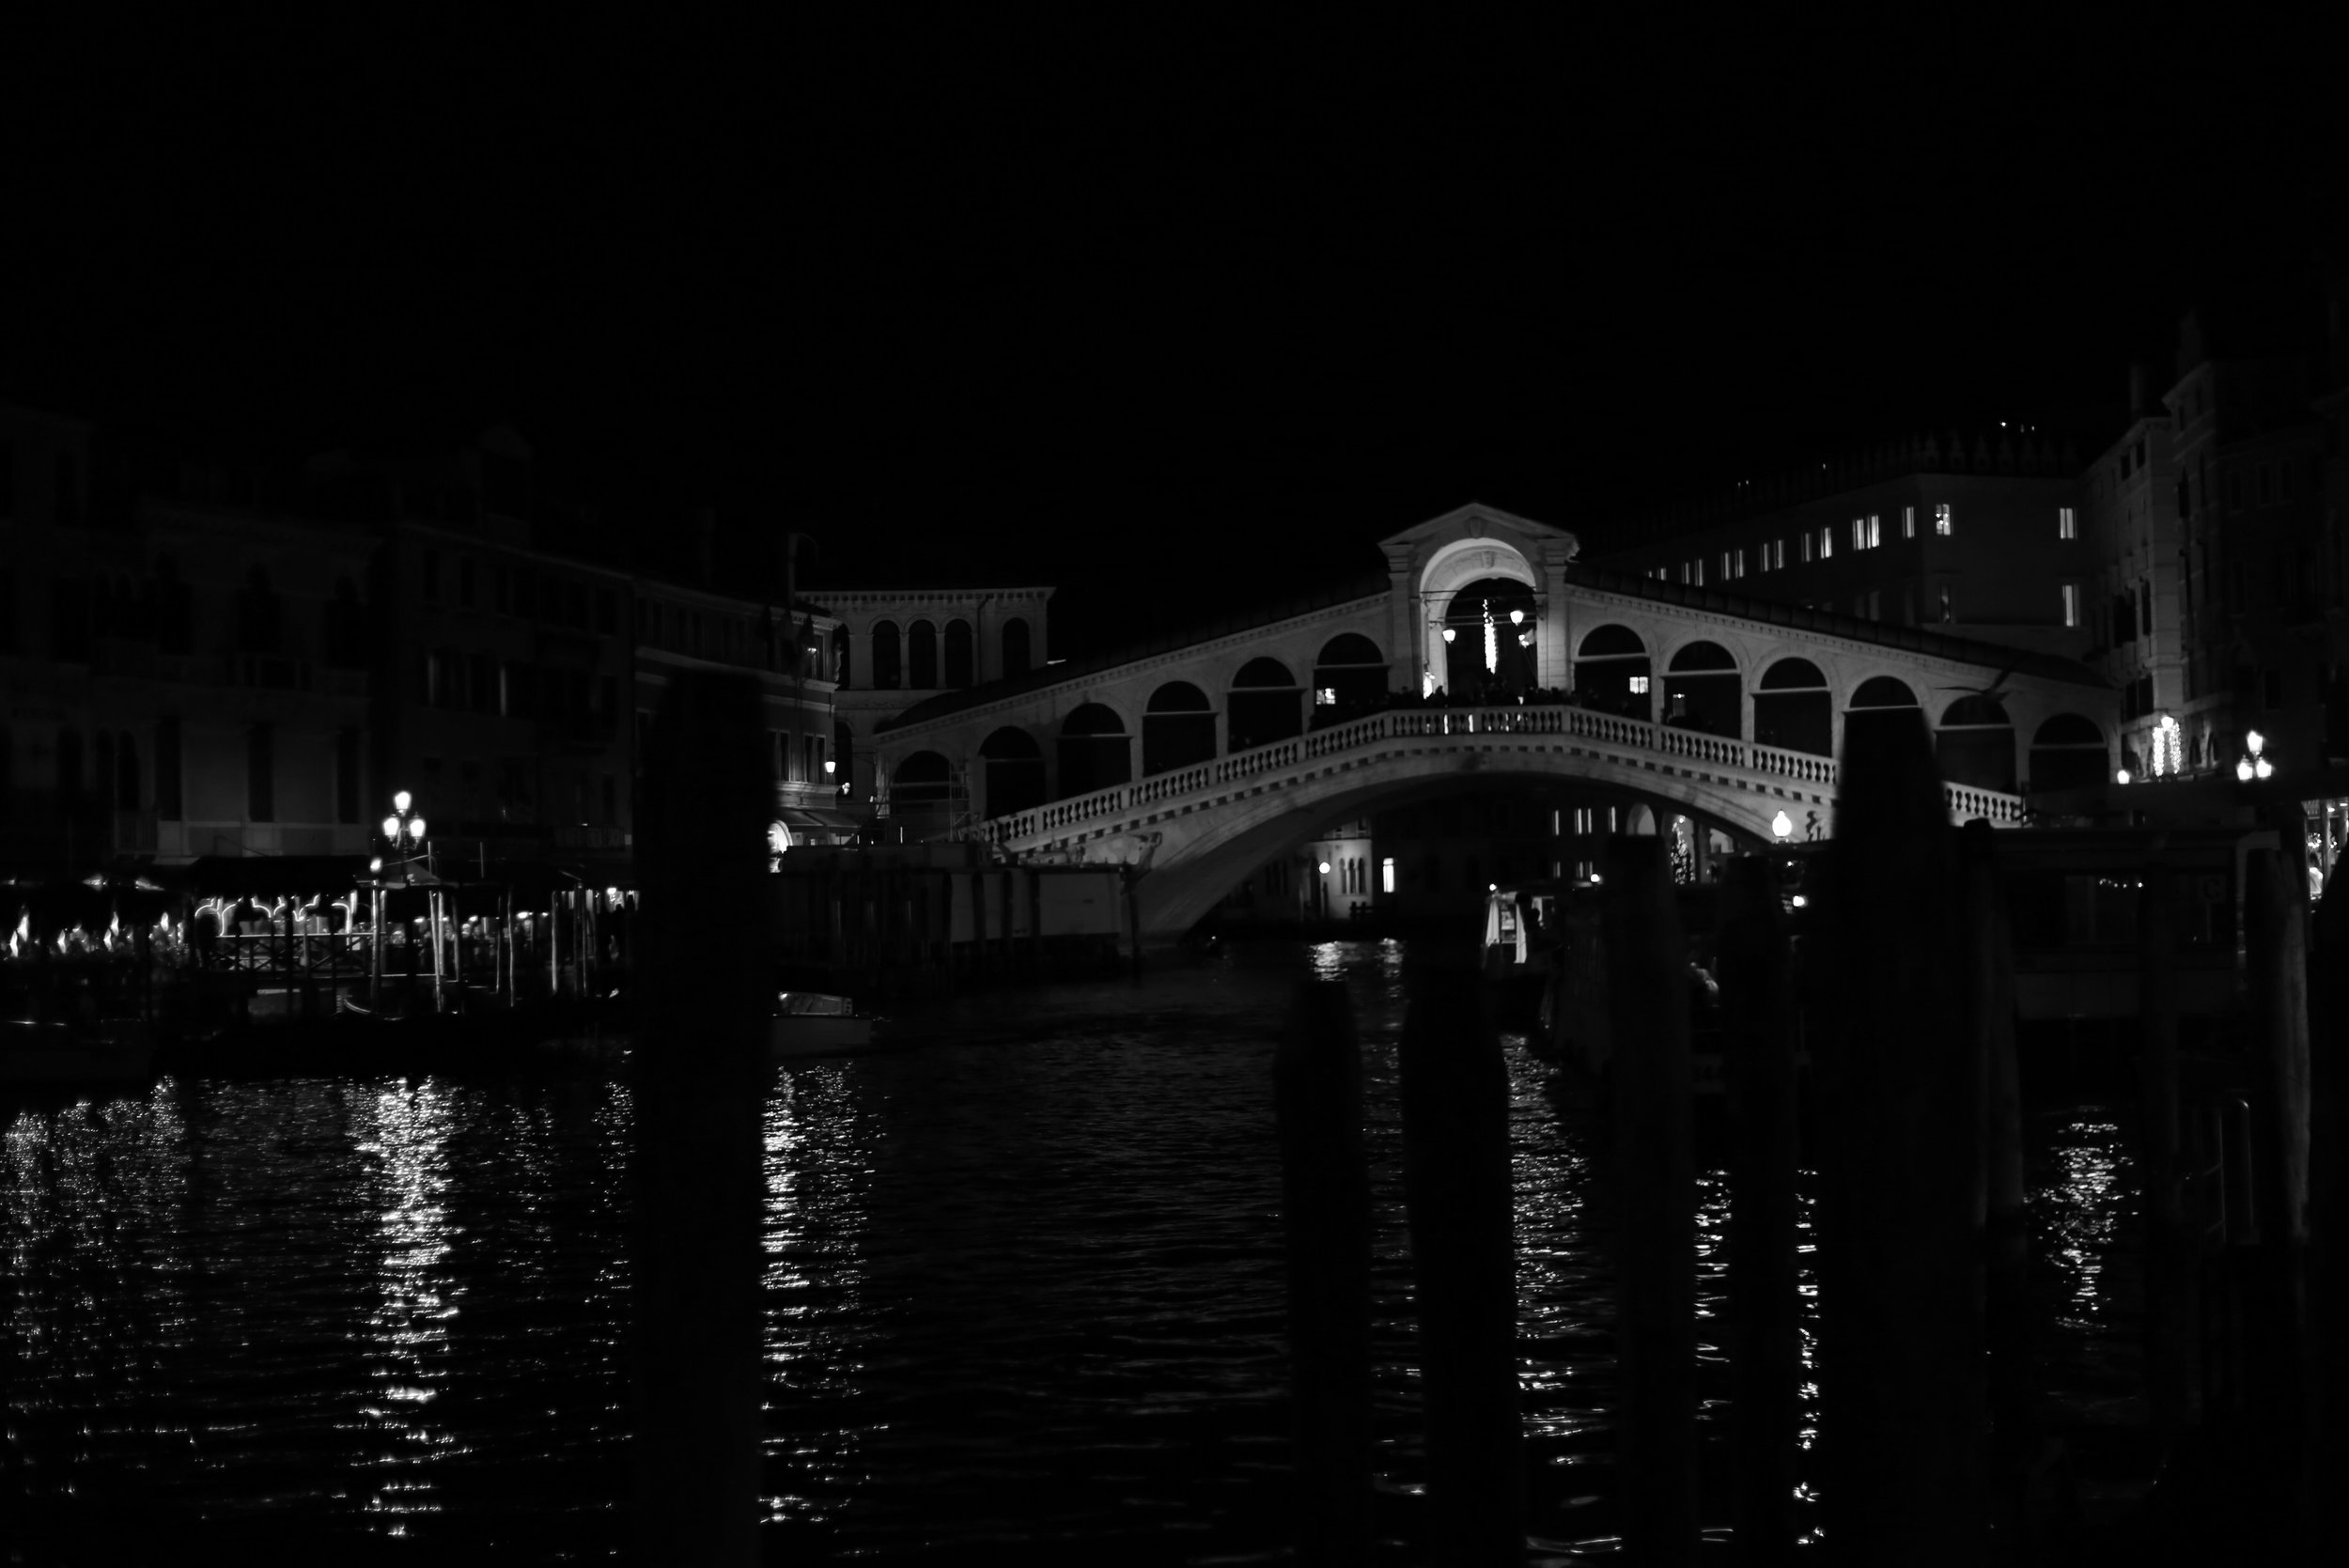 Rialto Bridge is lit up at night and the lights reflect on the water - in black and white.